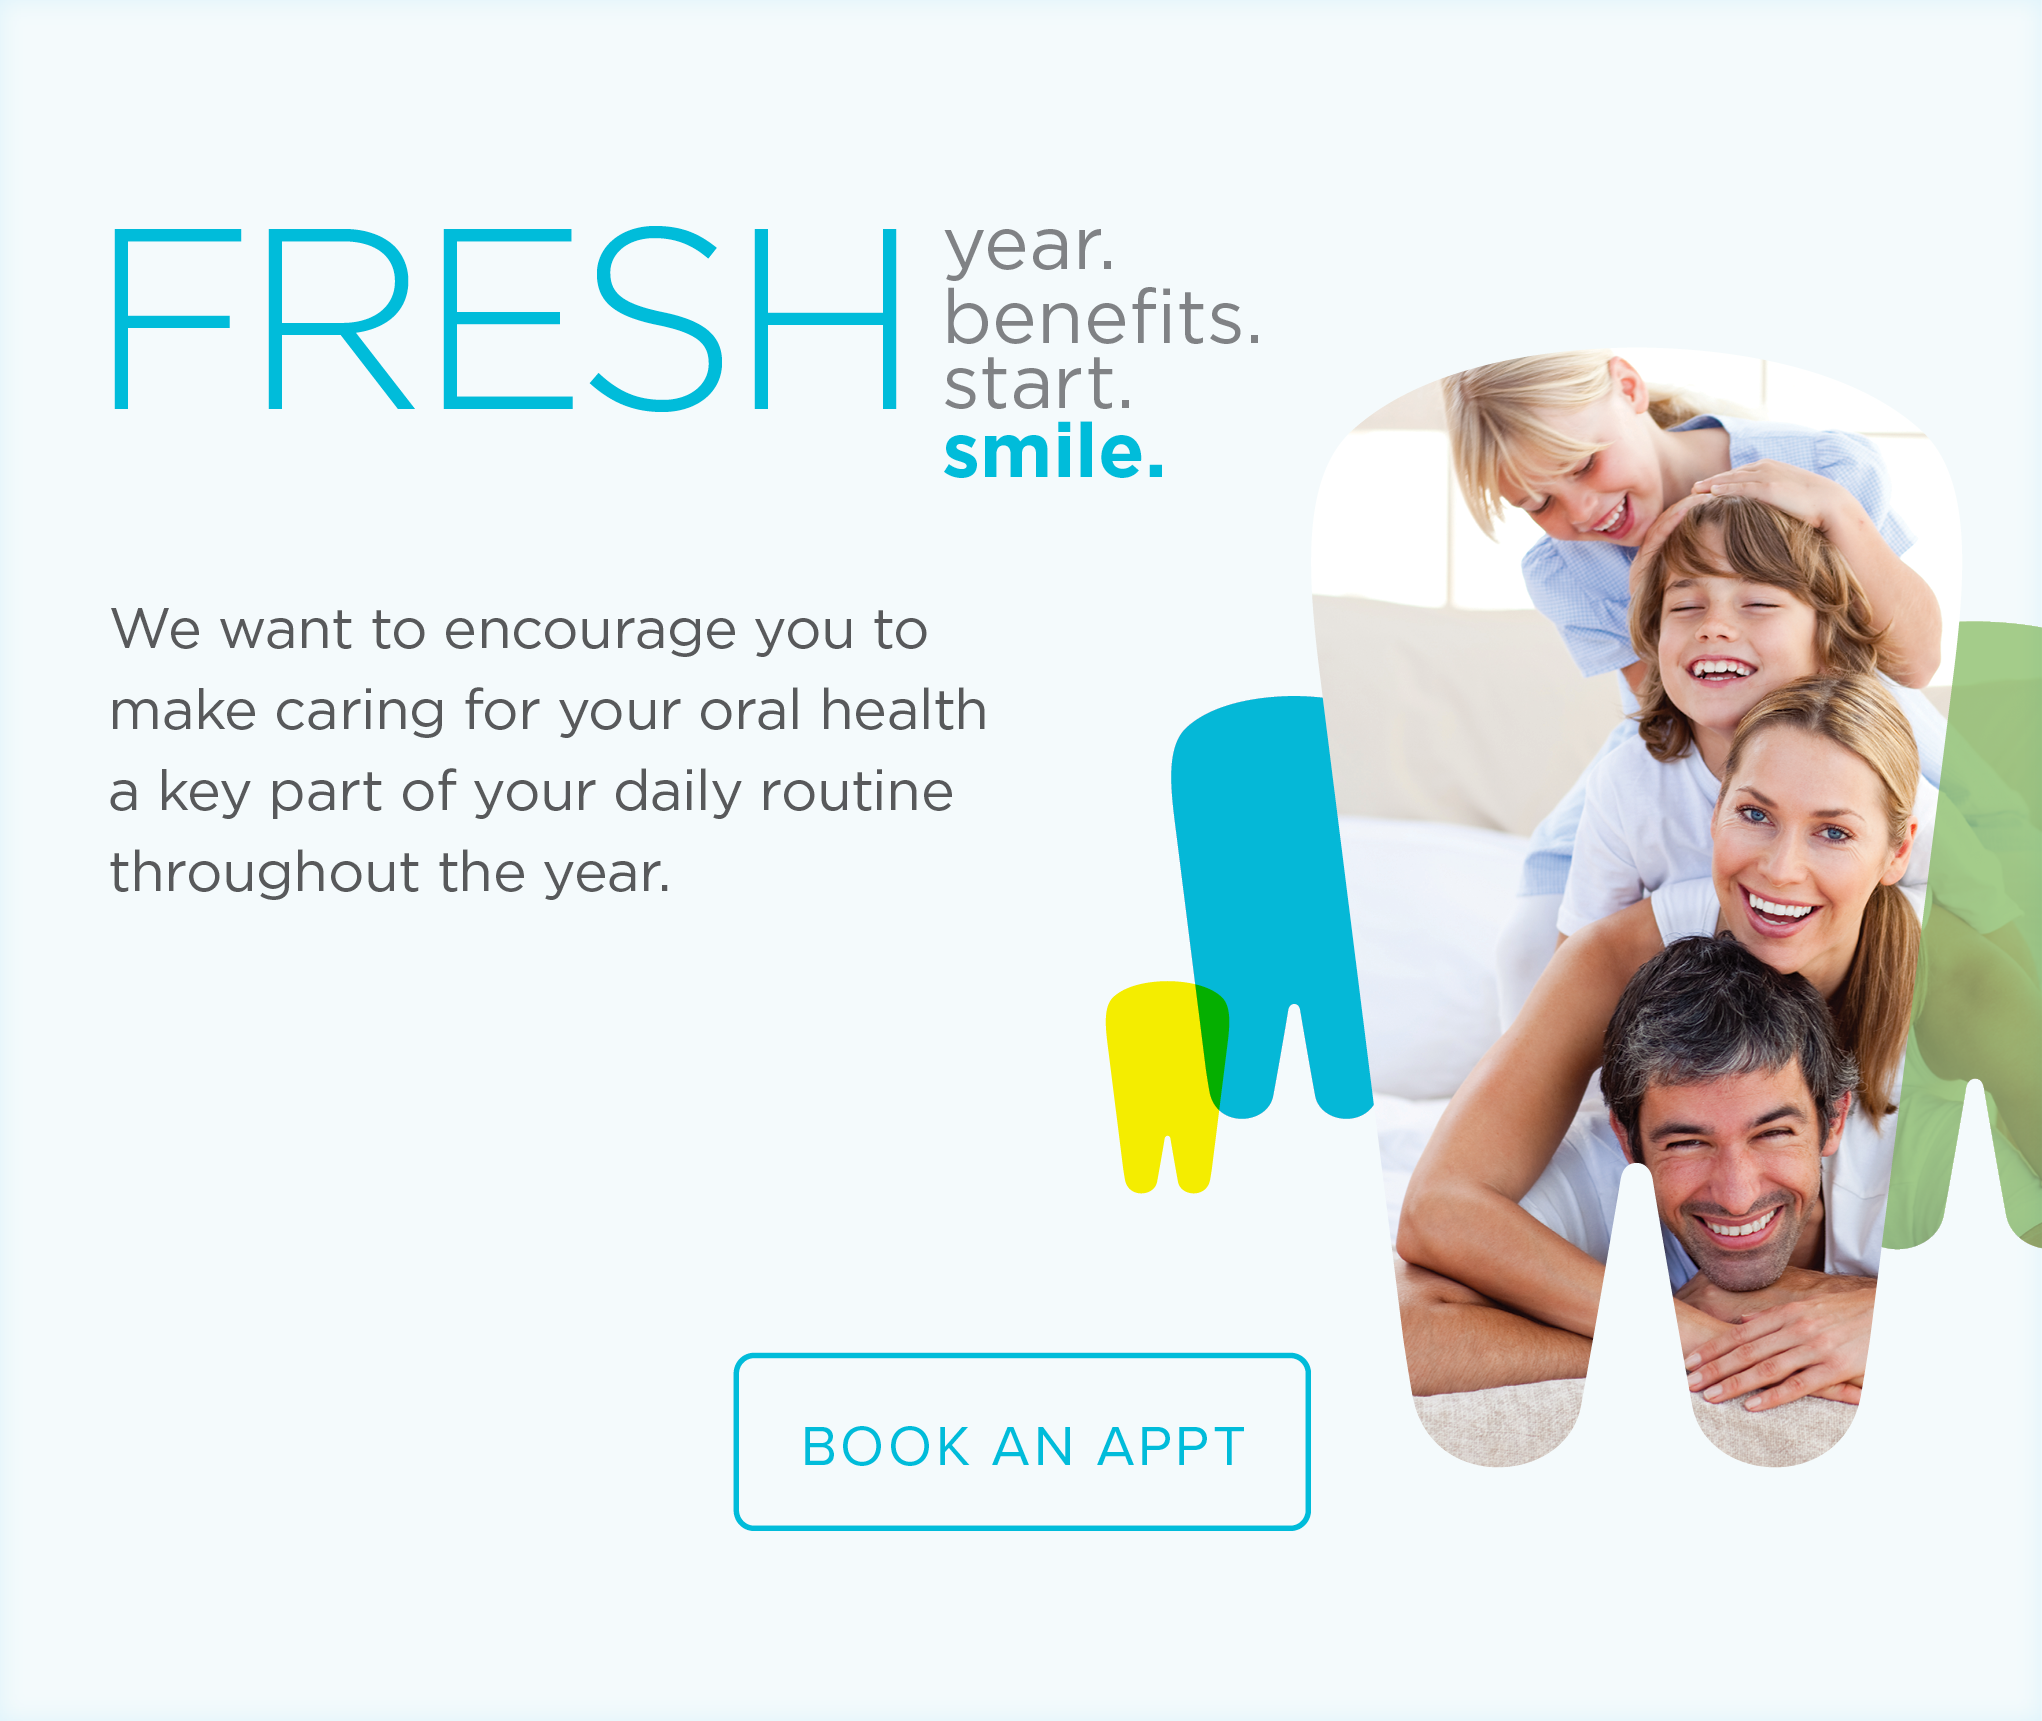 East Oaks Dental Group - Make the Most of Your Benefits